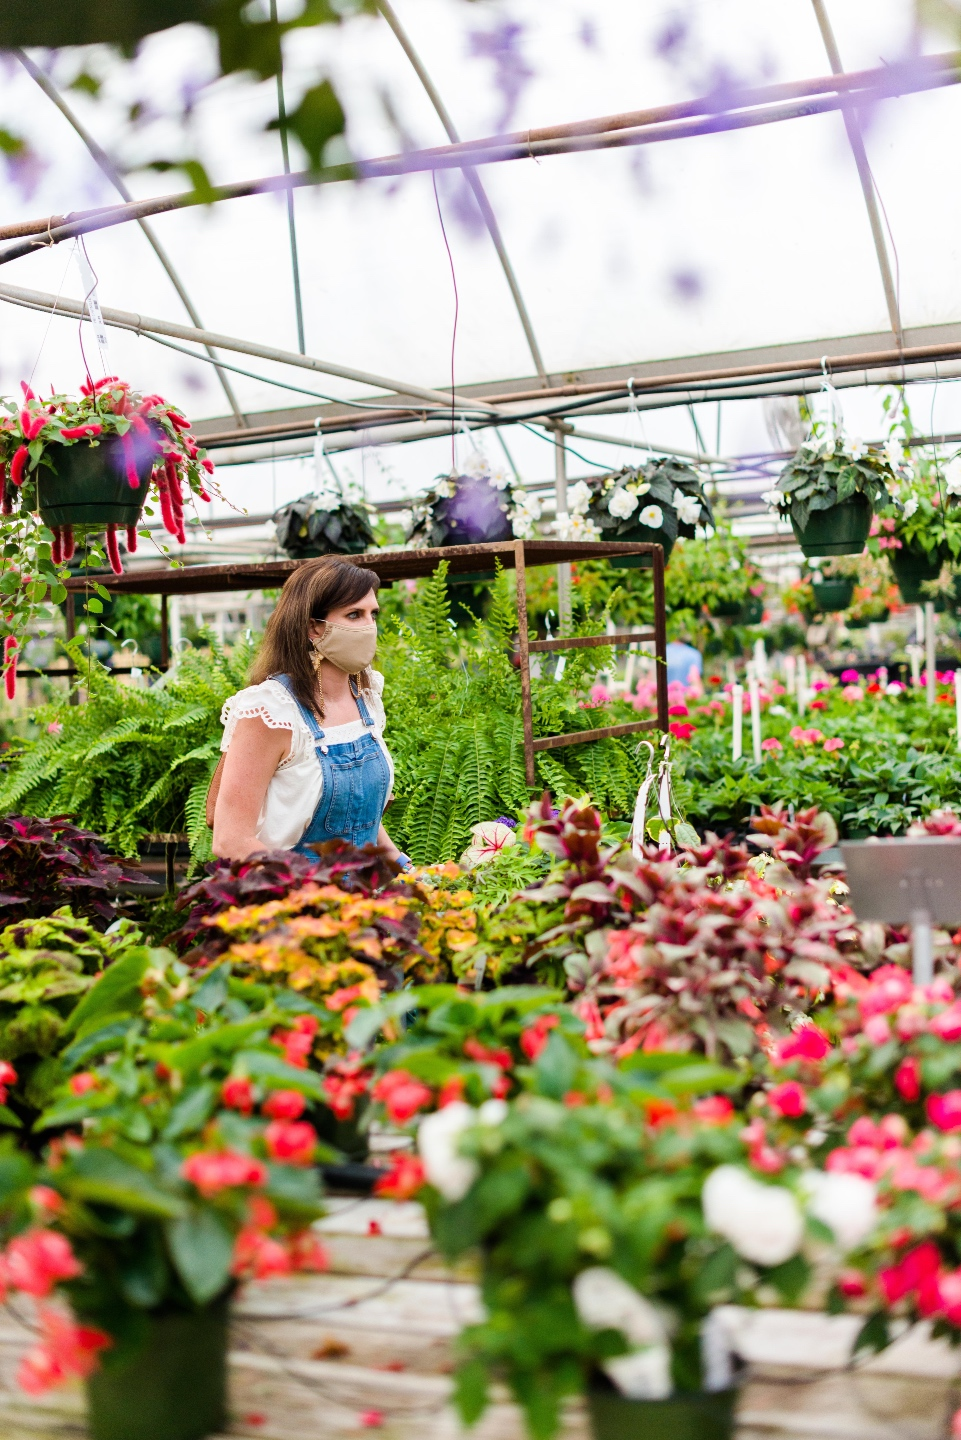 5 Spring Planting Tips with Fairview Garden Center - I'm Fixin' To - @imfixintoblog |Best Plants to Plant in Spring by popular NC lifestyle blog: image of a woman at the Fairview Garden Center.